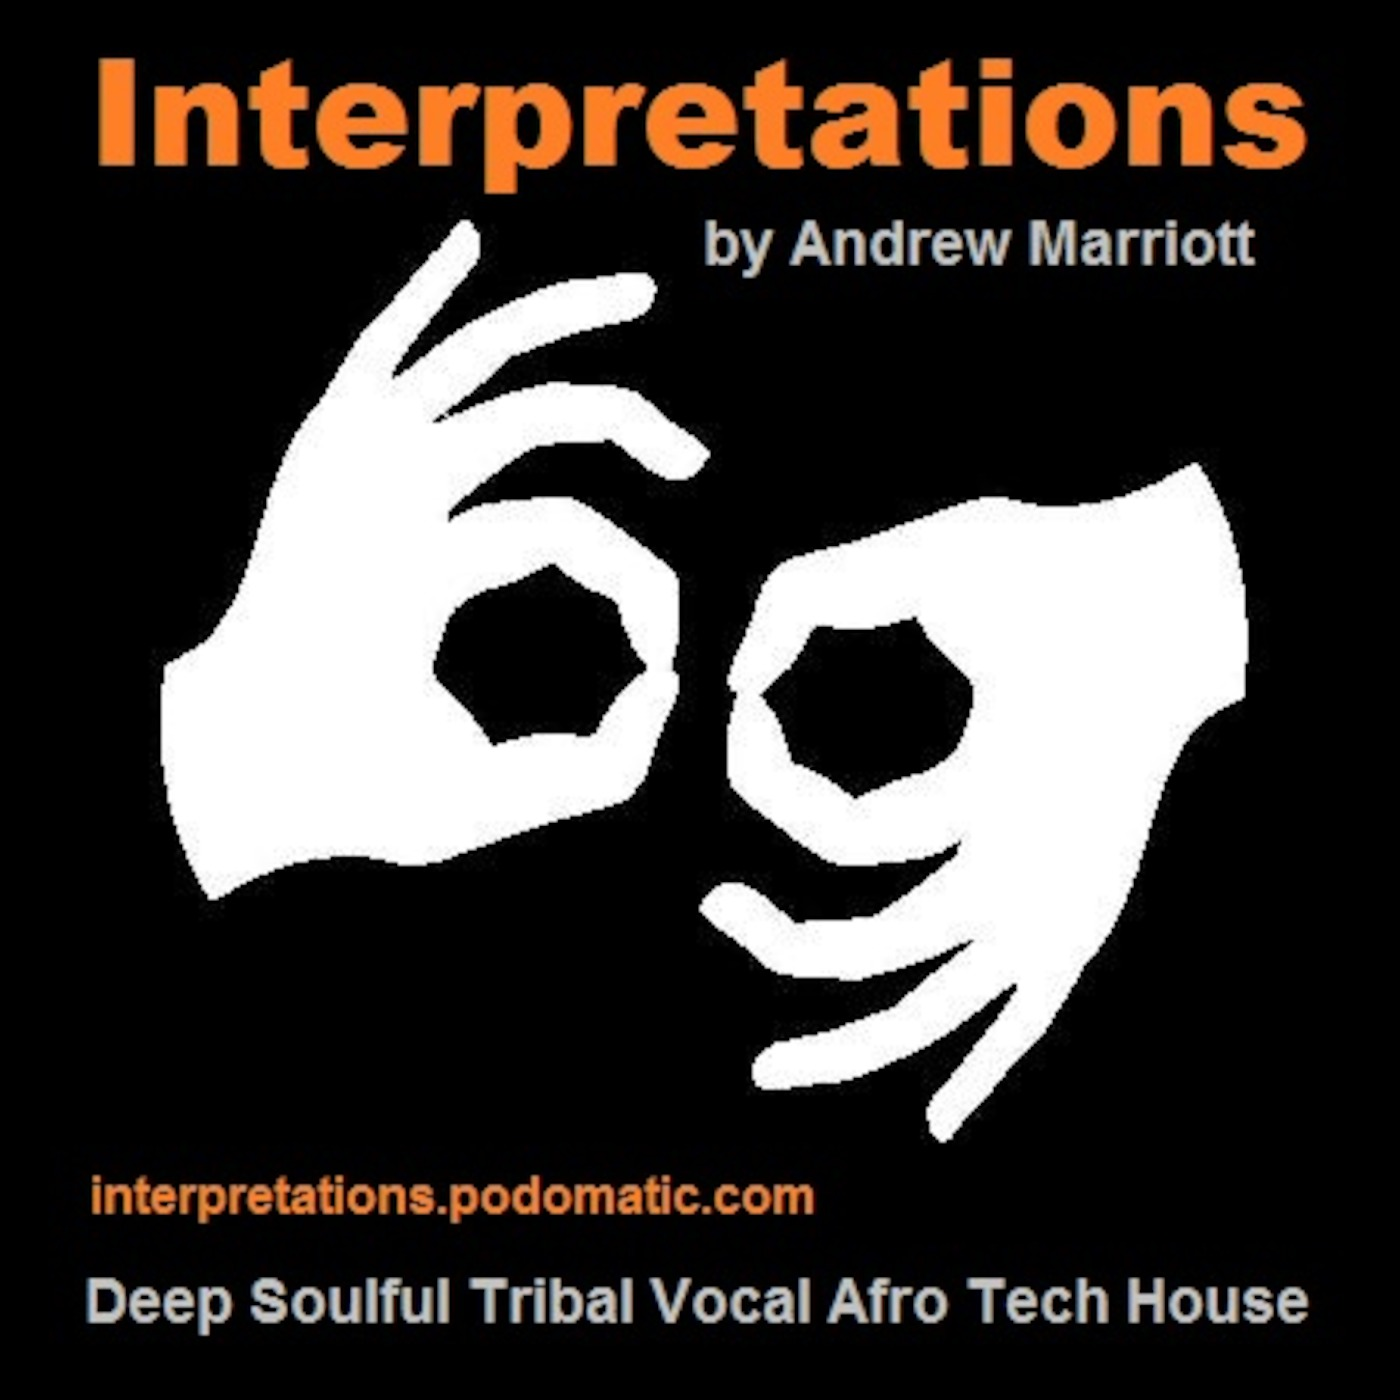 INTERPRETATIONS | by Andrew Marriott